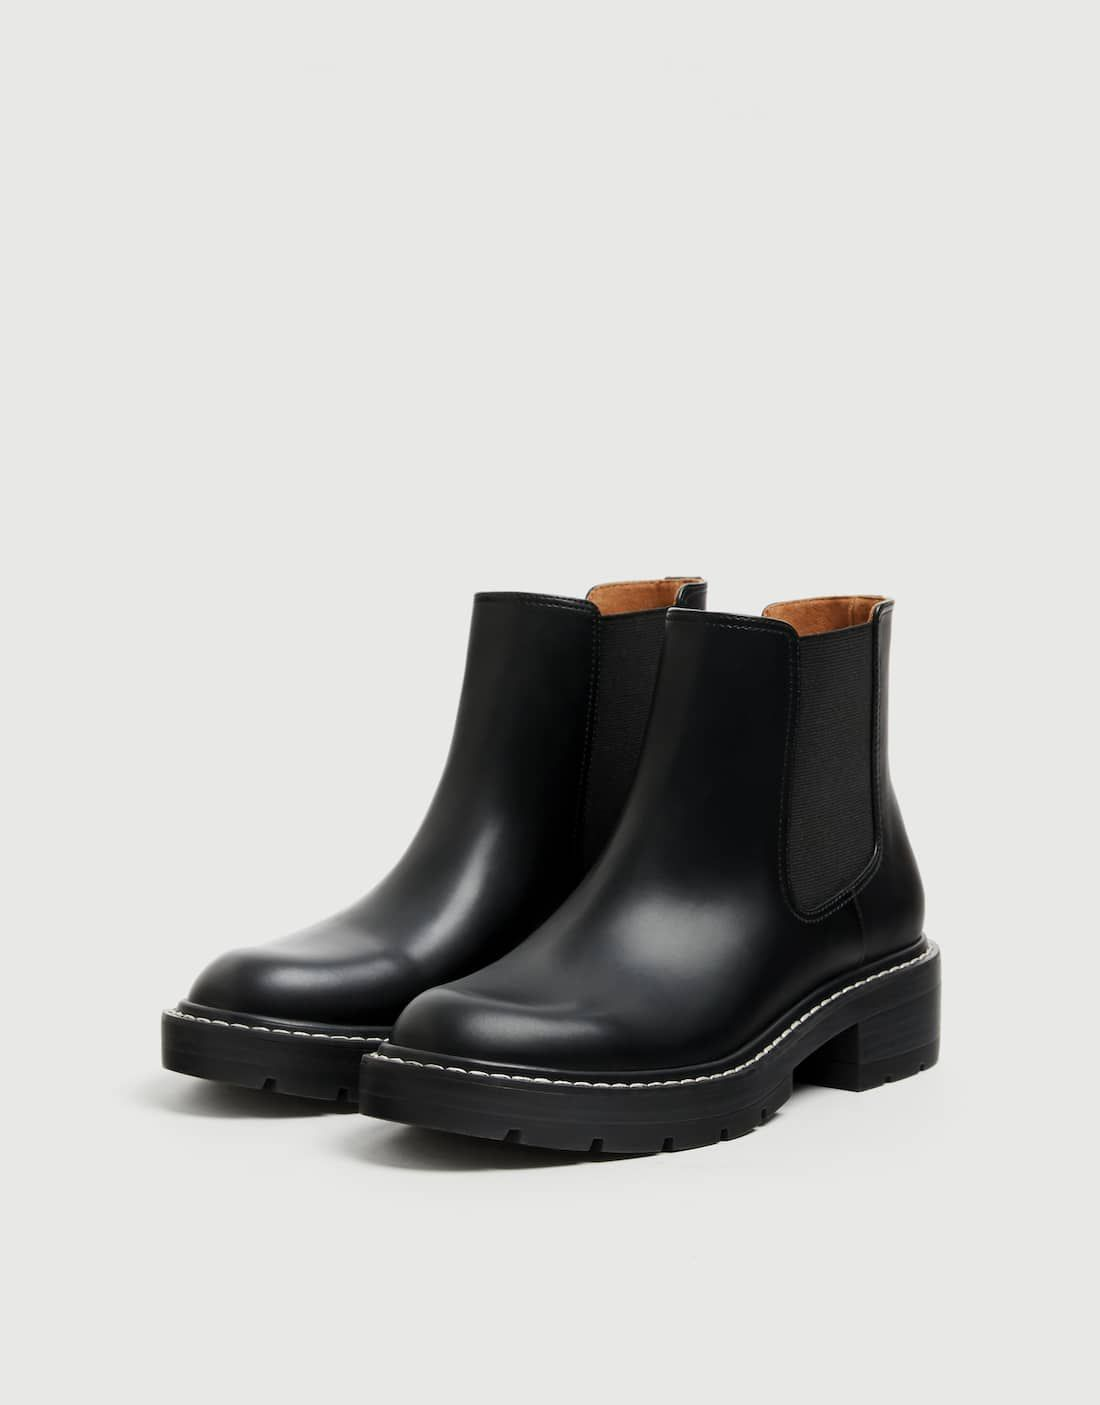 5442a9c1db9 Black topstitched Chelsea boots in 2019 | Style | Chelsea boots ...